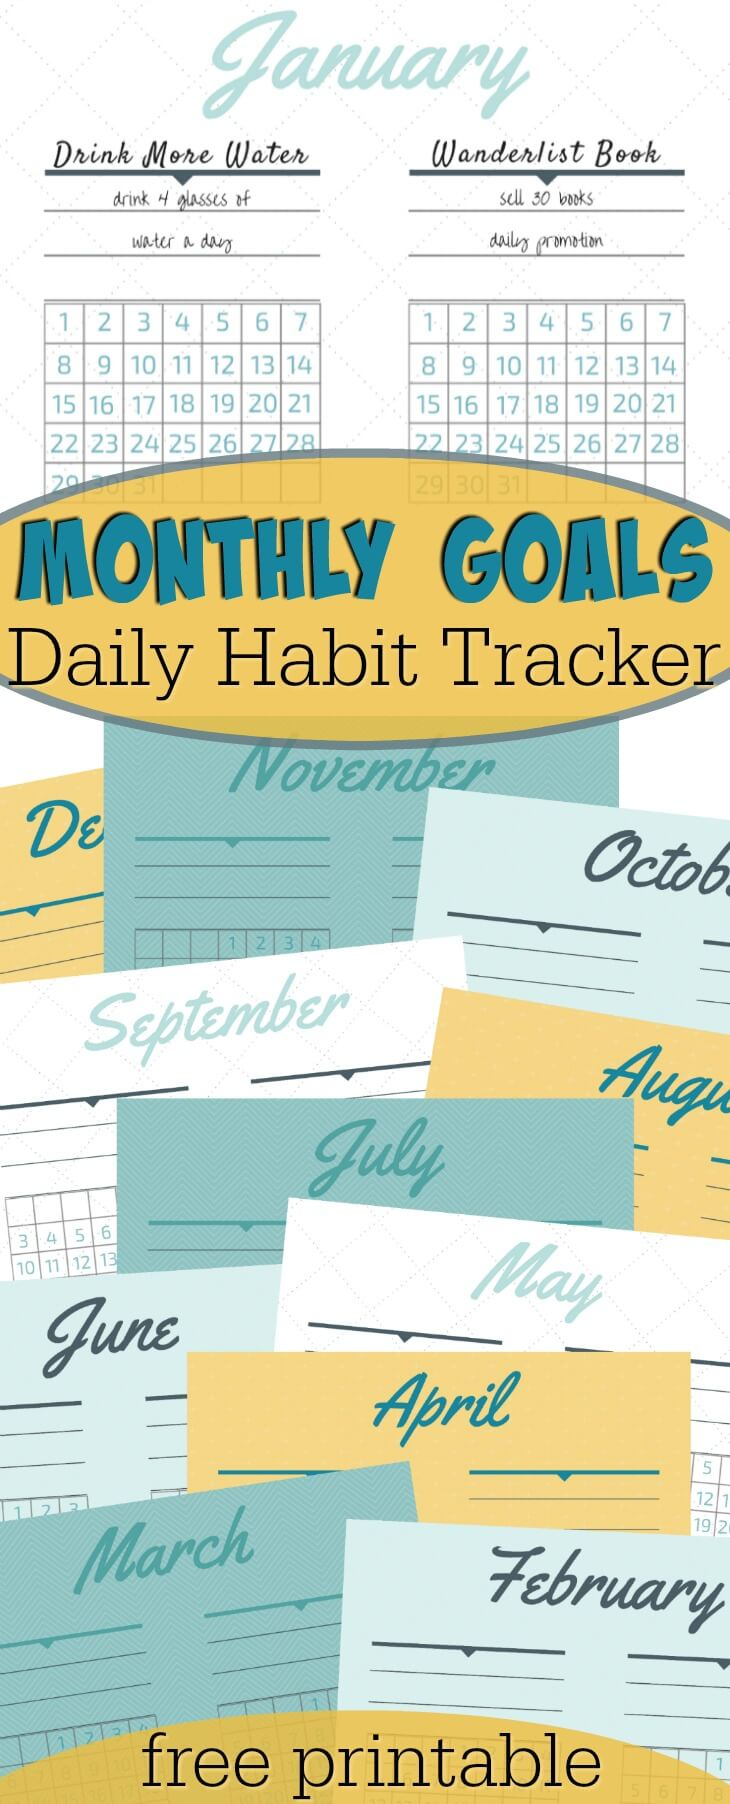 New years resolution ideas to help you succeed! Goals worksheet printables with a daily habit tracker.